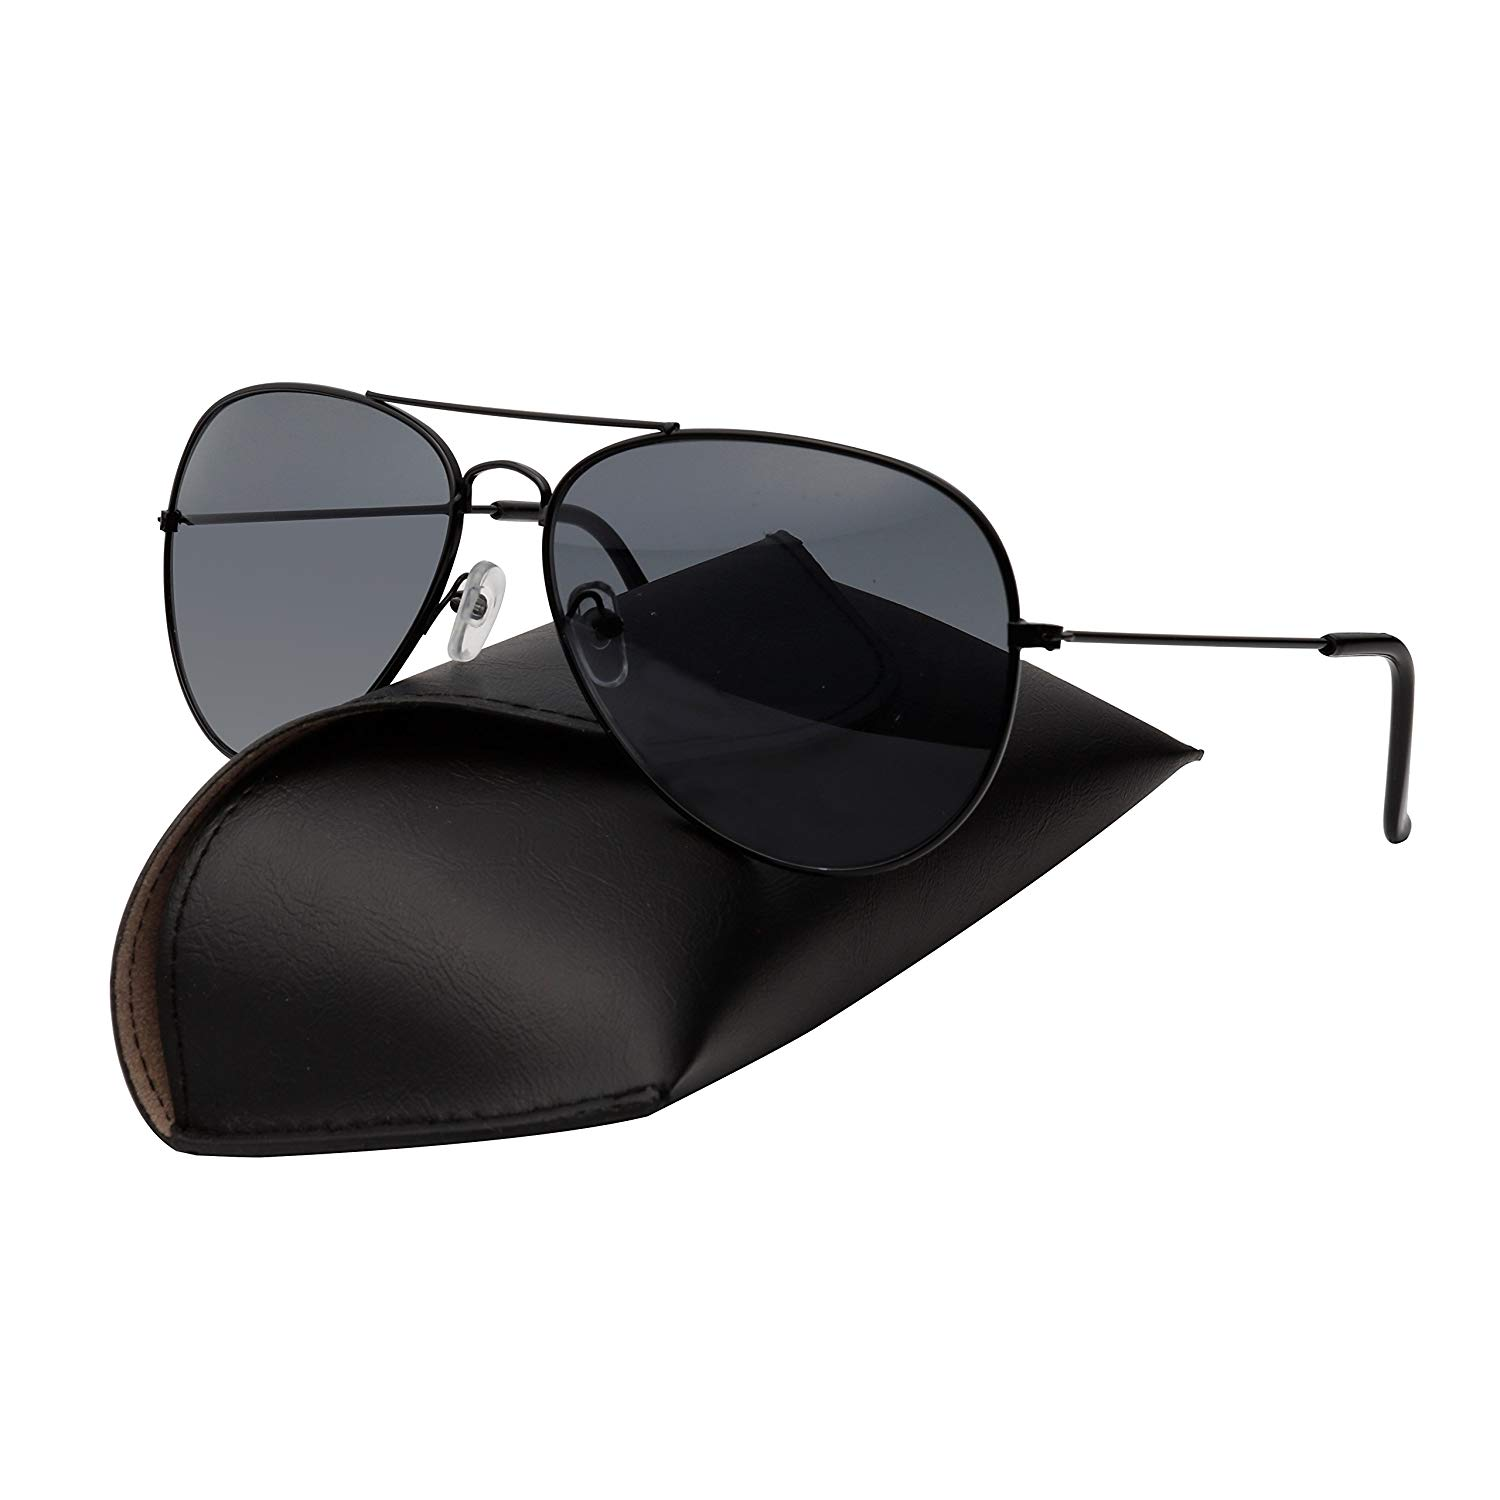 fe470f89e733 Get Quotations · Premium Military Style Classic Aviator Sunglasses,  Polarized, 100% UV protection